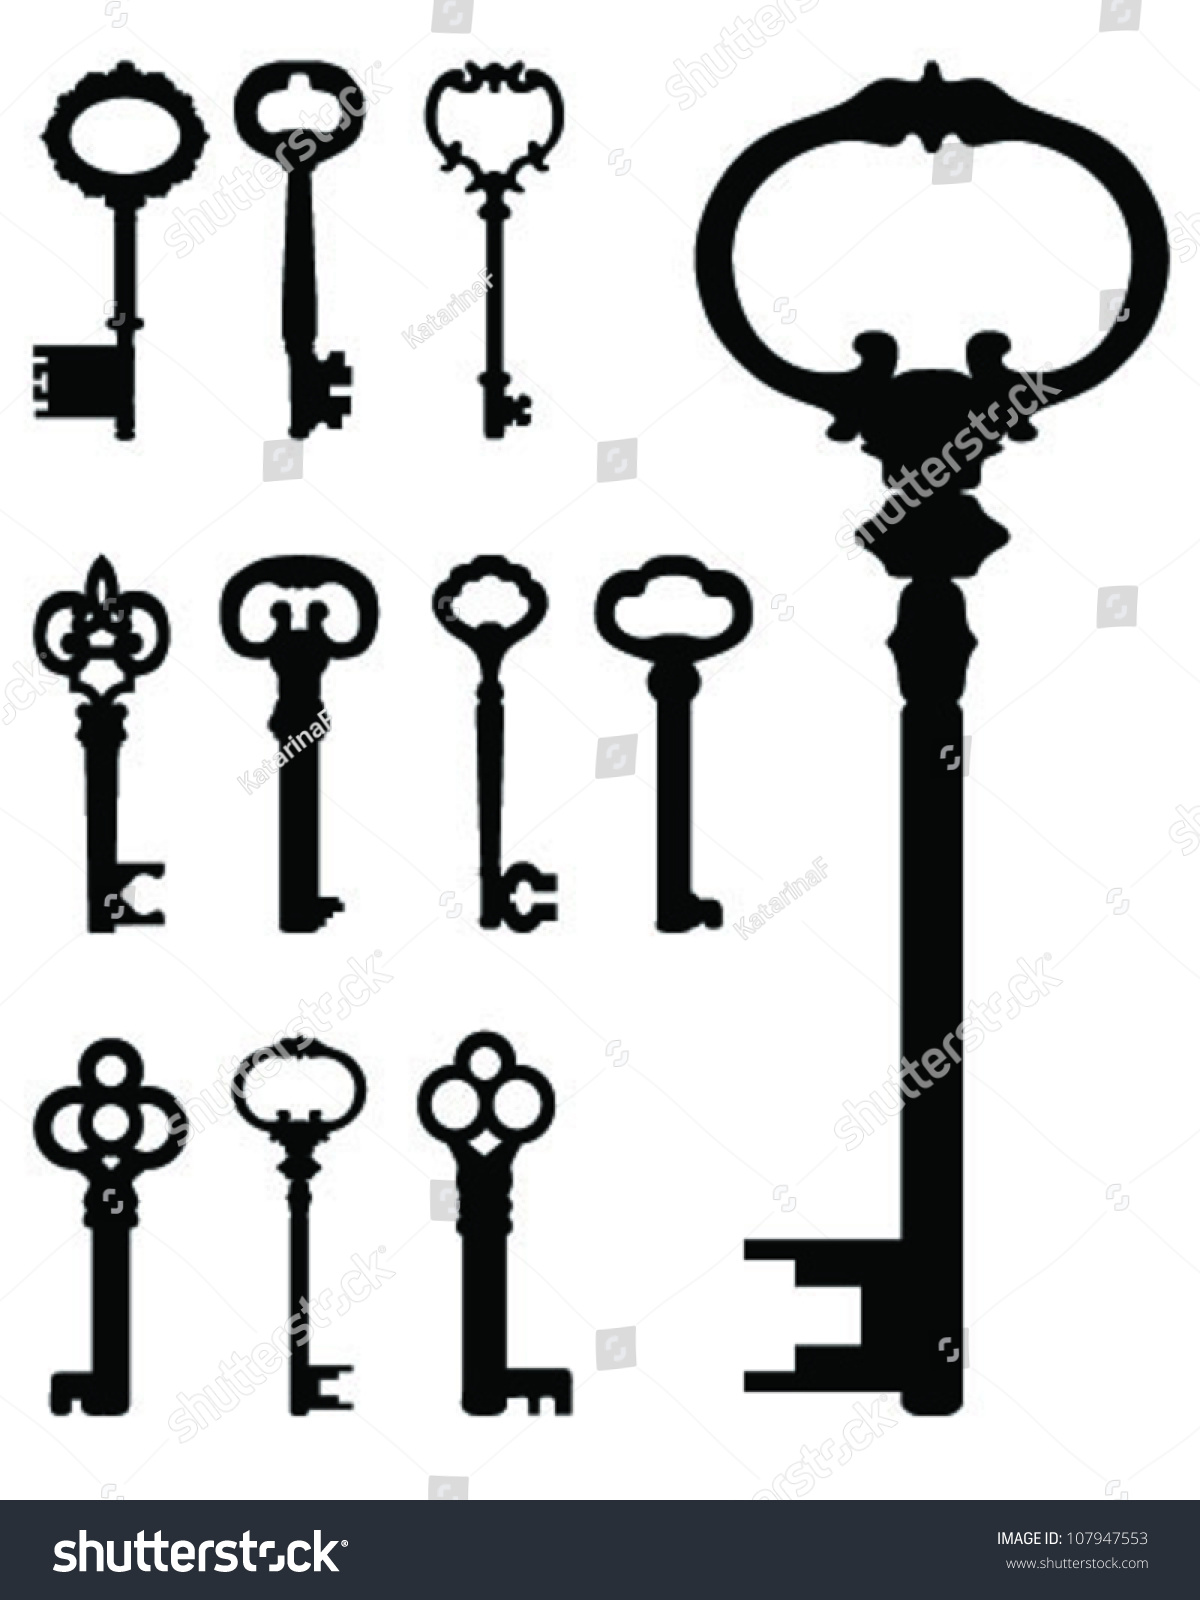 skeleton key clipart free vector - photo #36